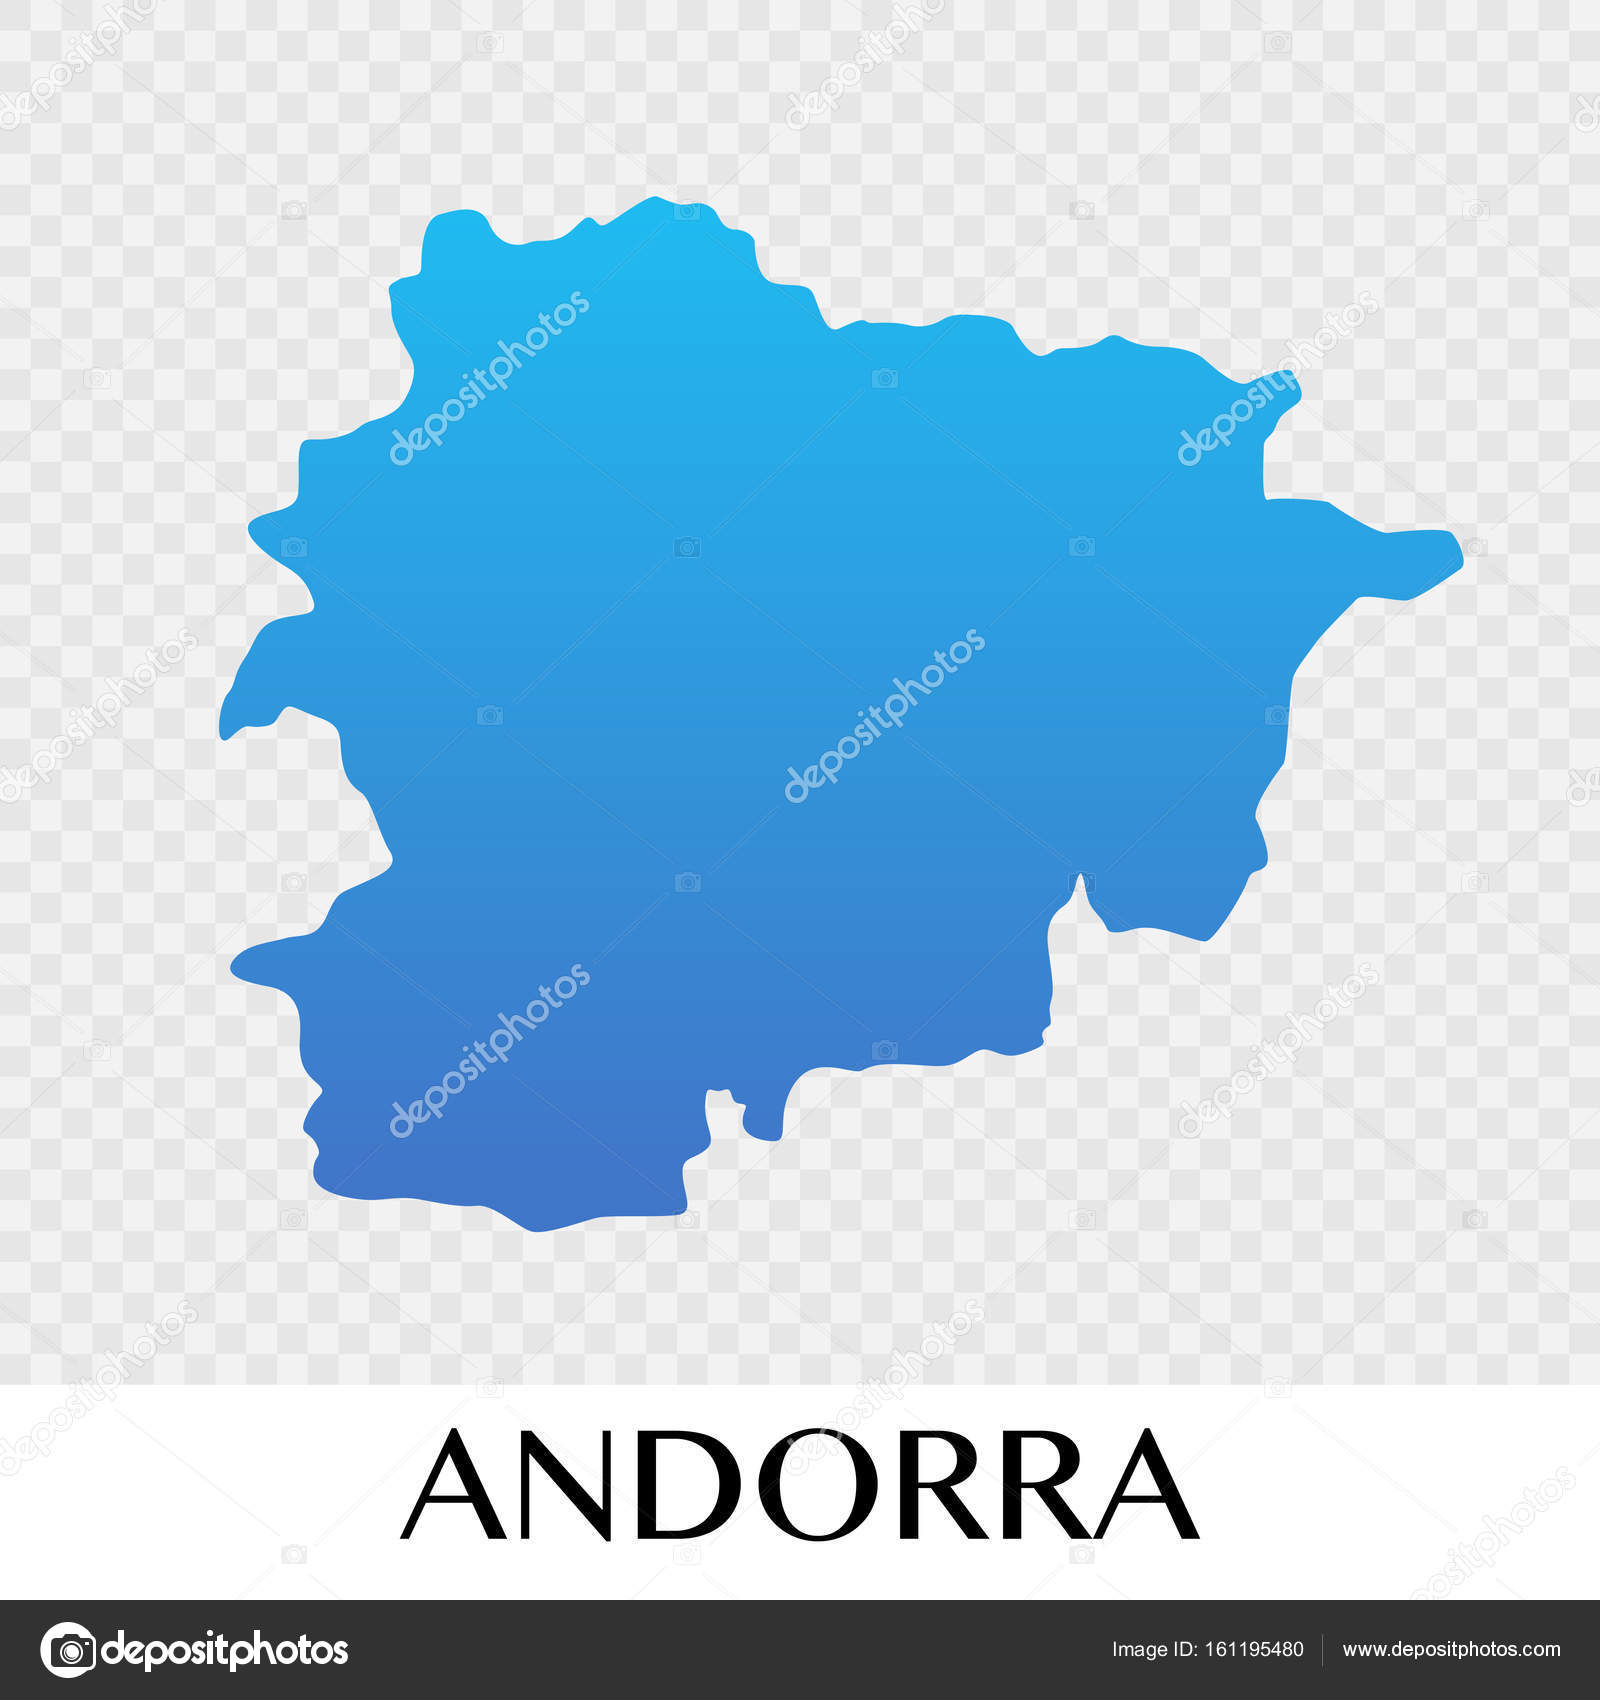 andorra map in europe continent illustration design stock vector